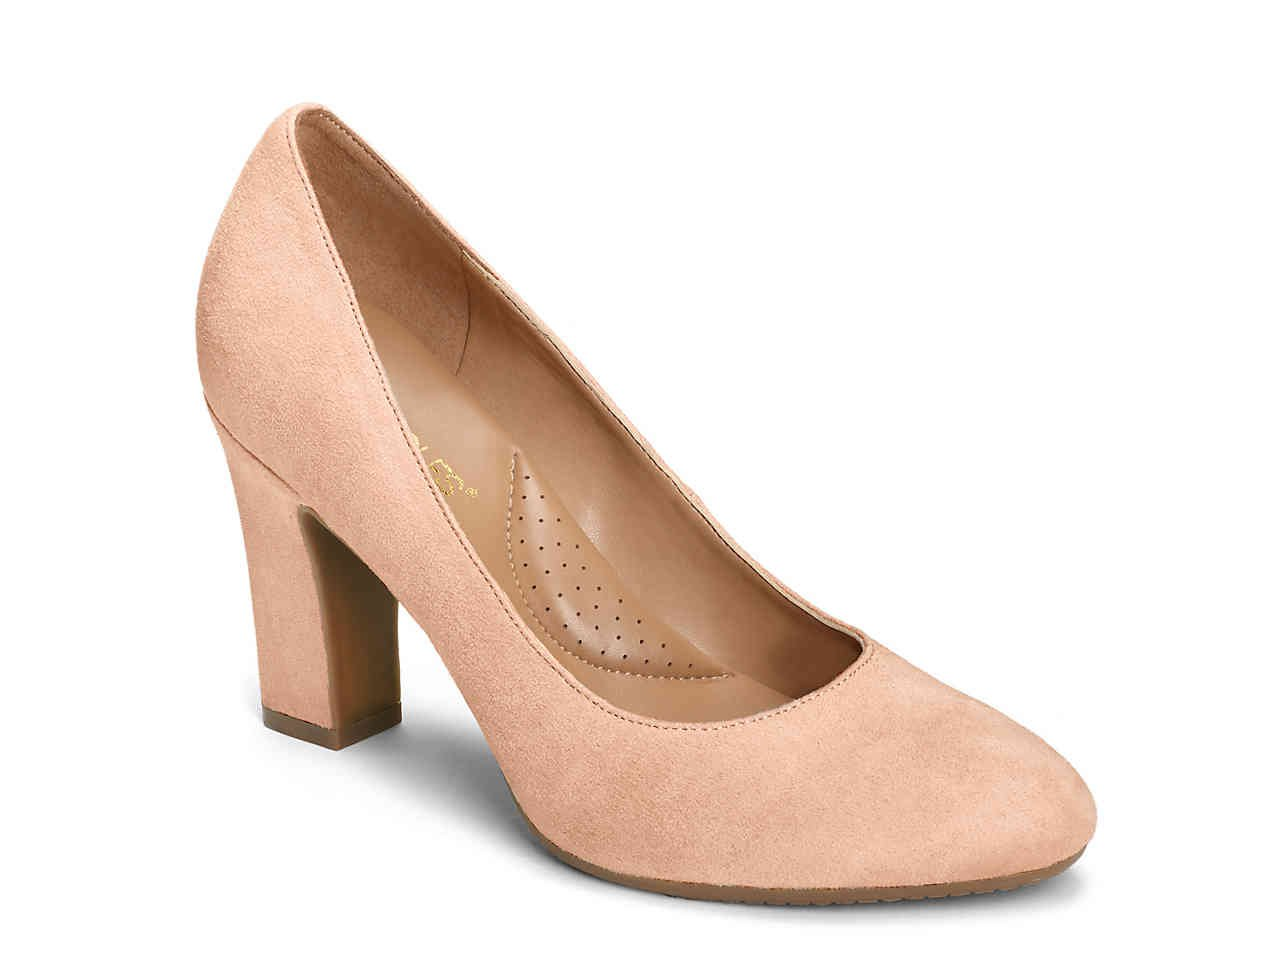 Aerosoles Octagon Pump Women's Shoes | DSW